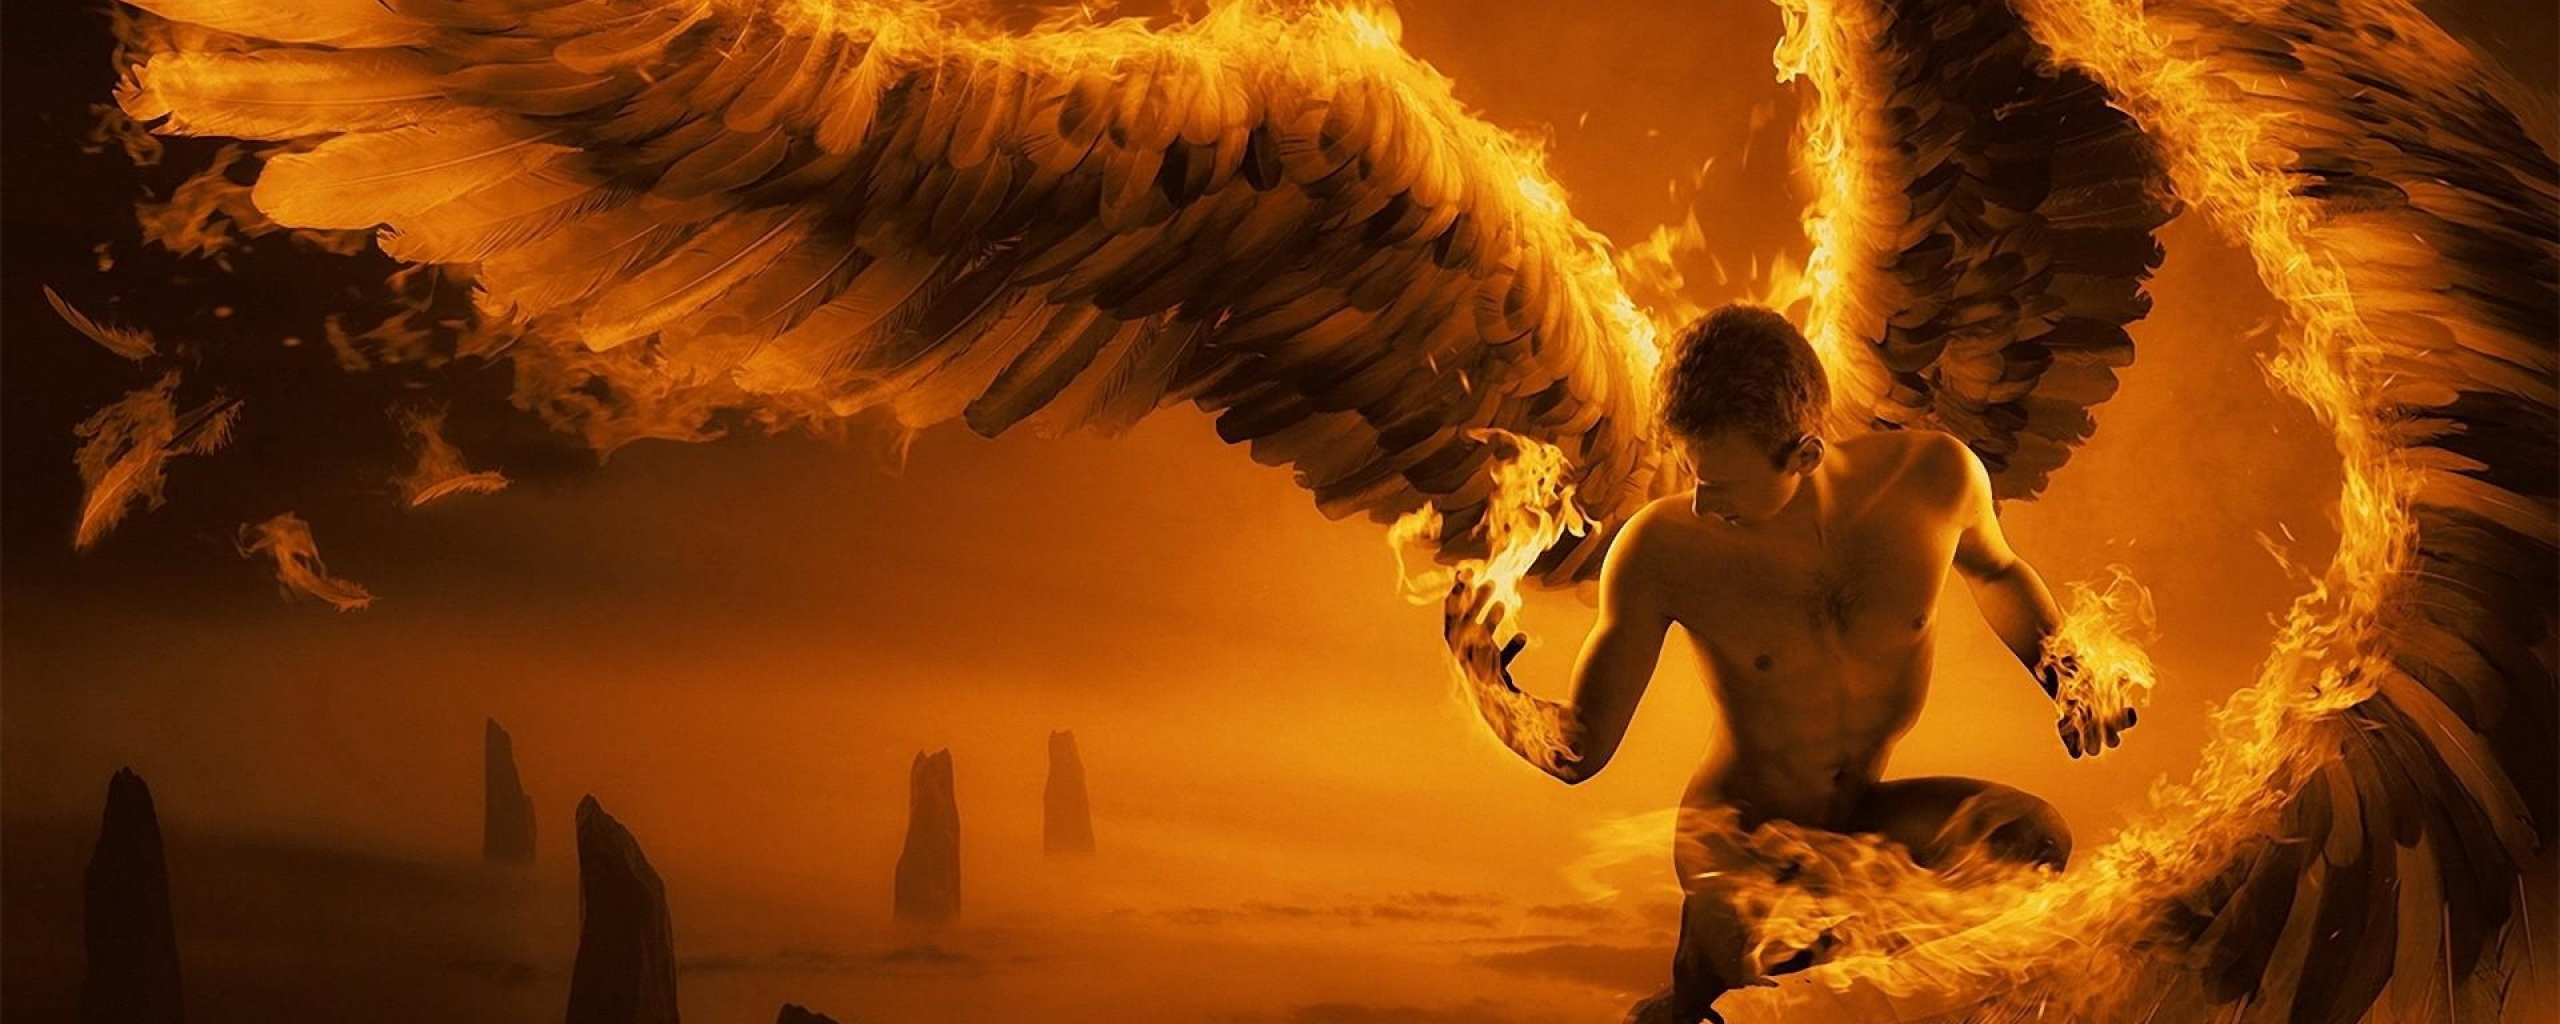 Sad Boy Quotes Hd Wallpaper Download Wings Of Fire Wallpaper Gallery